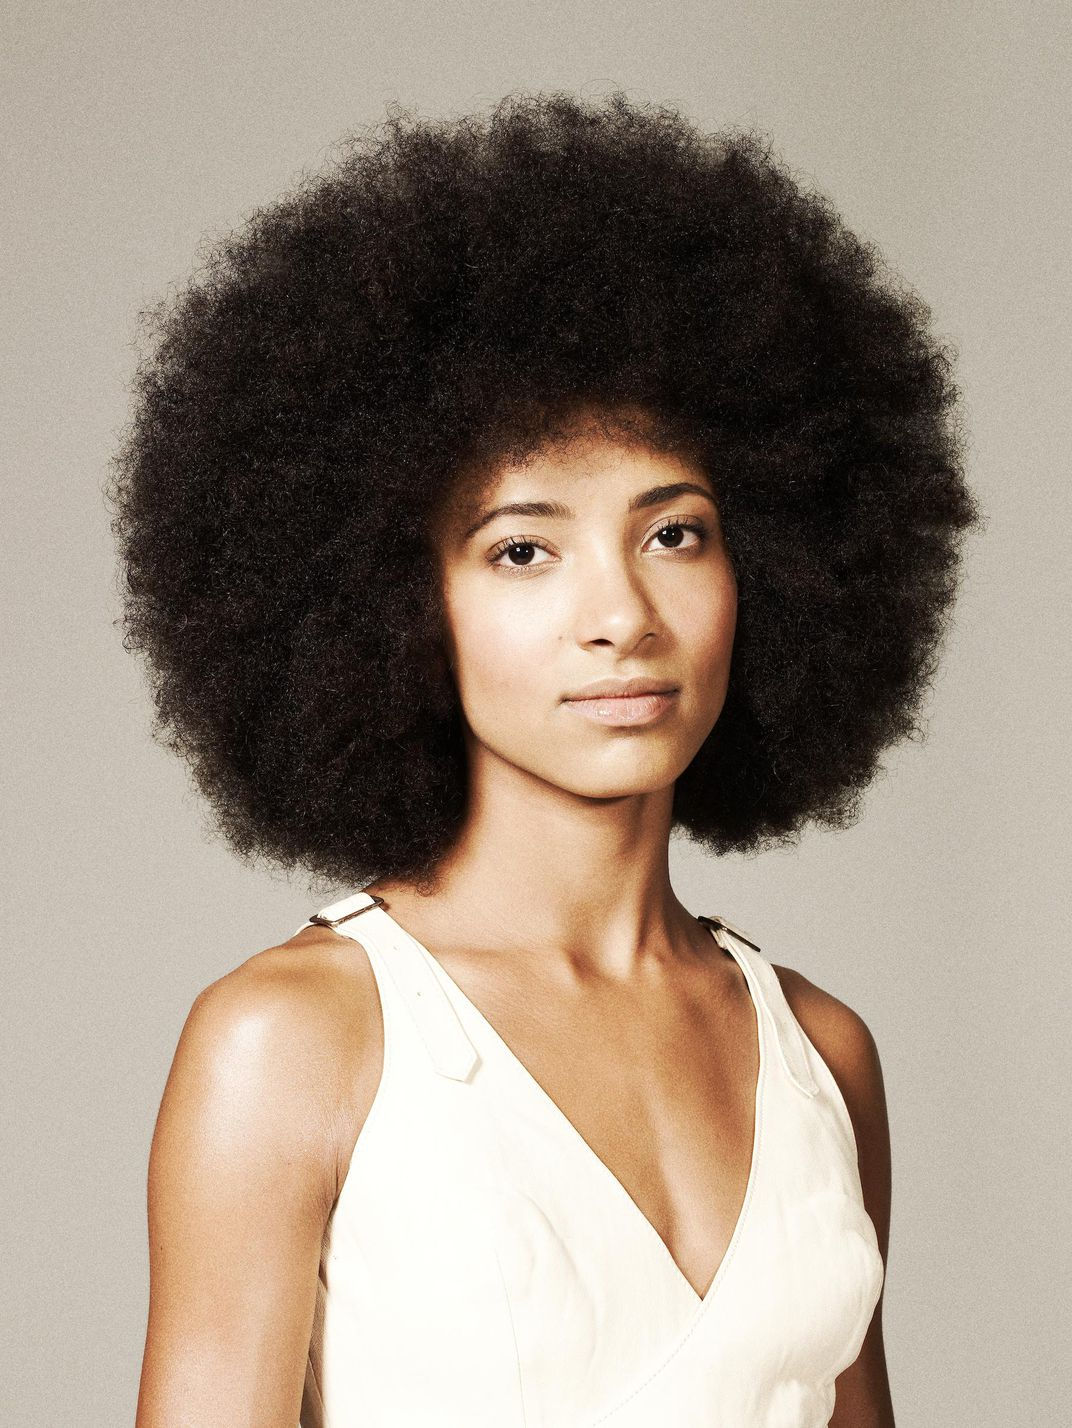 Esperanza Spalding: Jazz Musician, Grammy Award Winner and